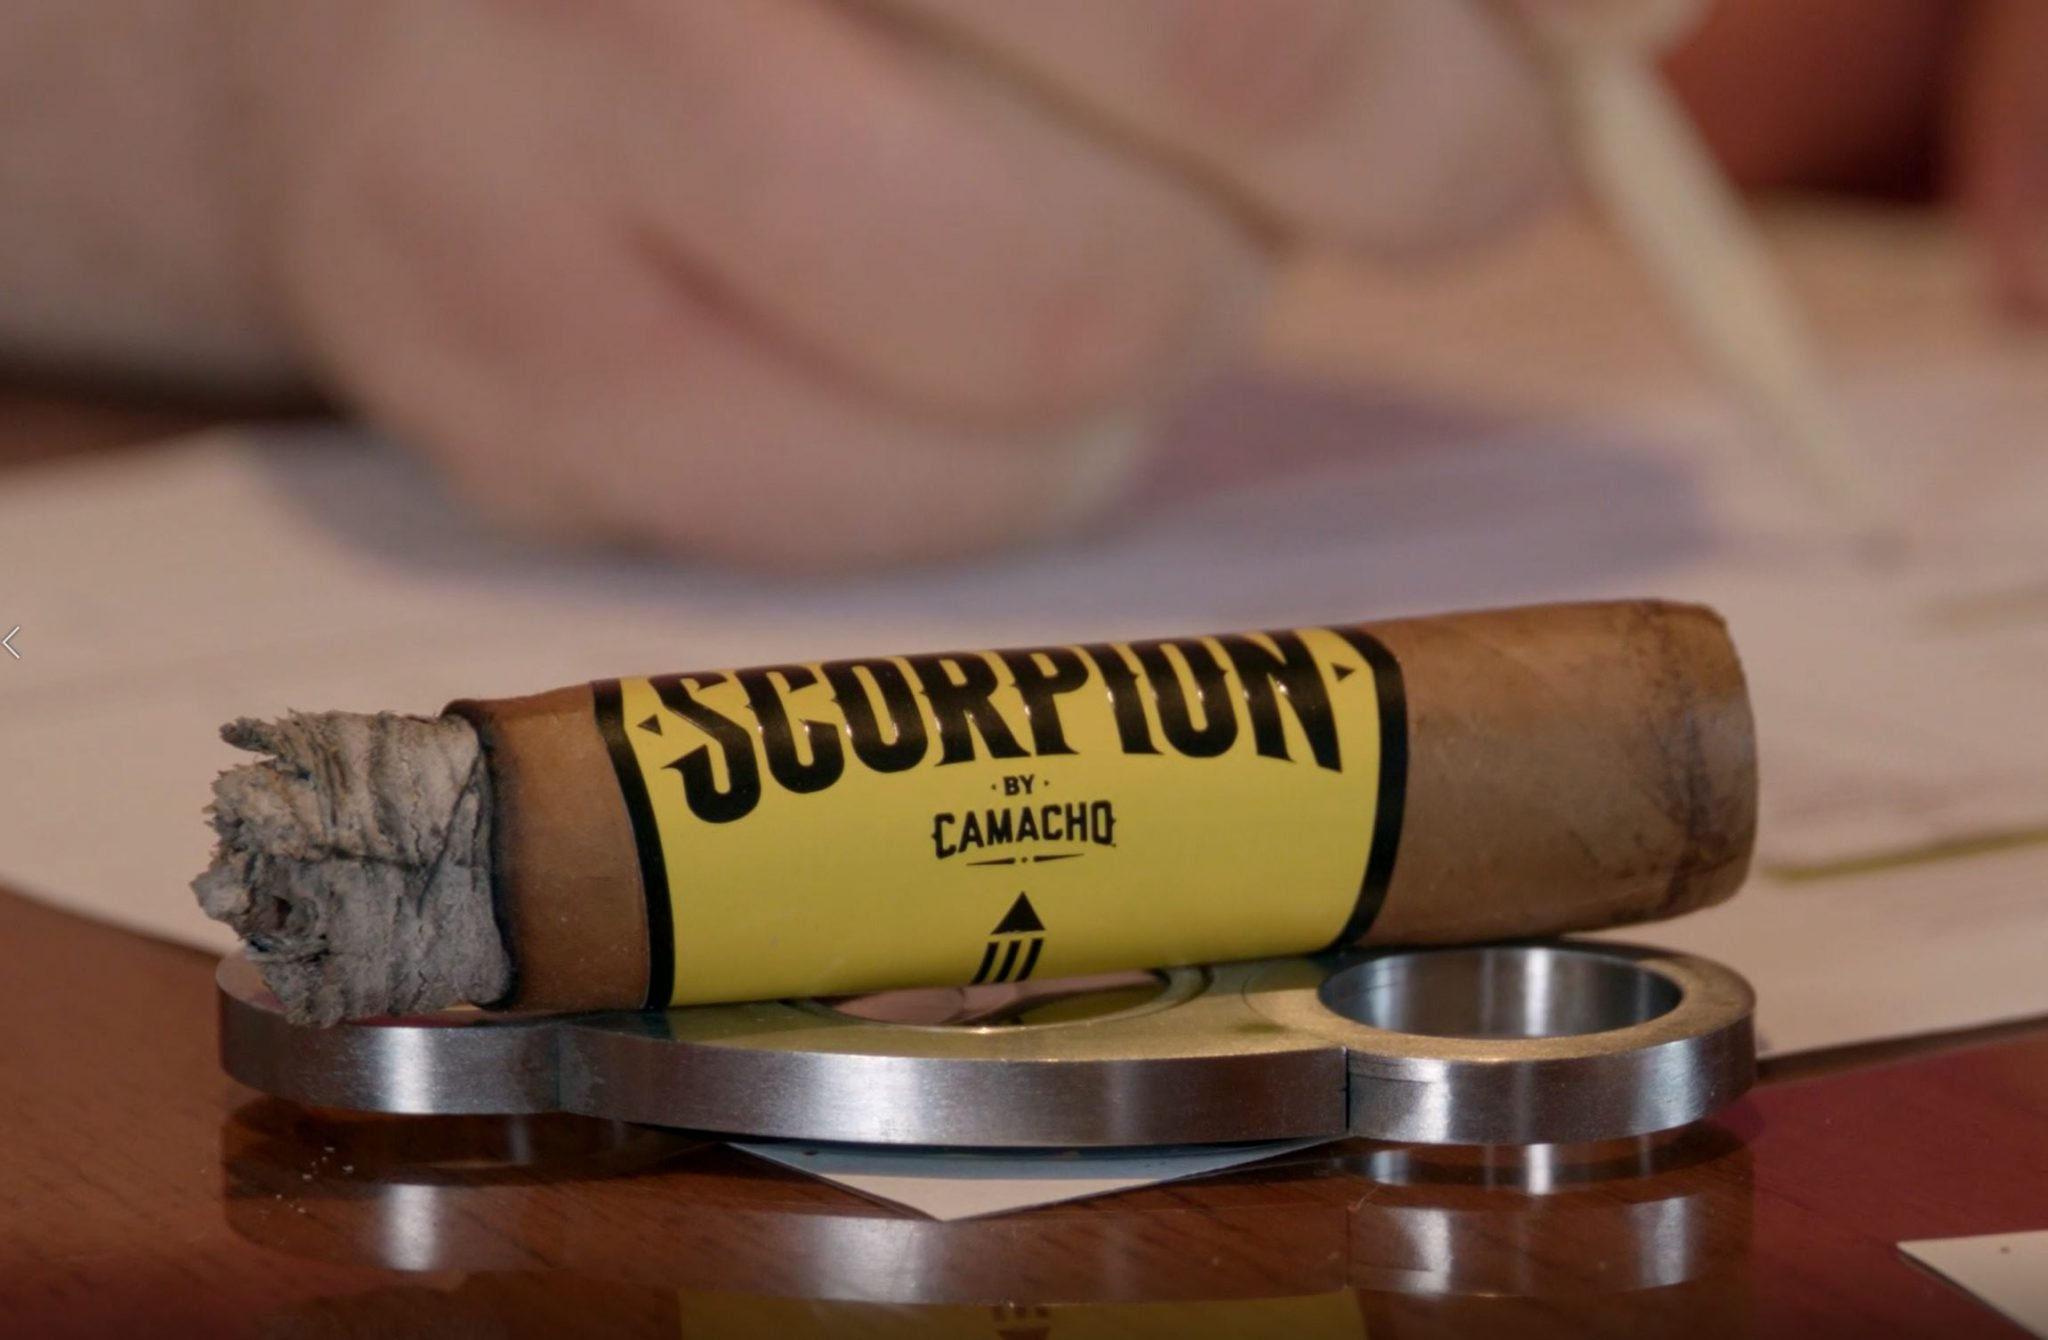 camacho scorpion connecticut cigar review video smoking the cigar at Famous Smoke Shop